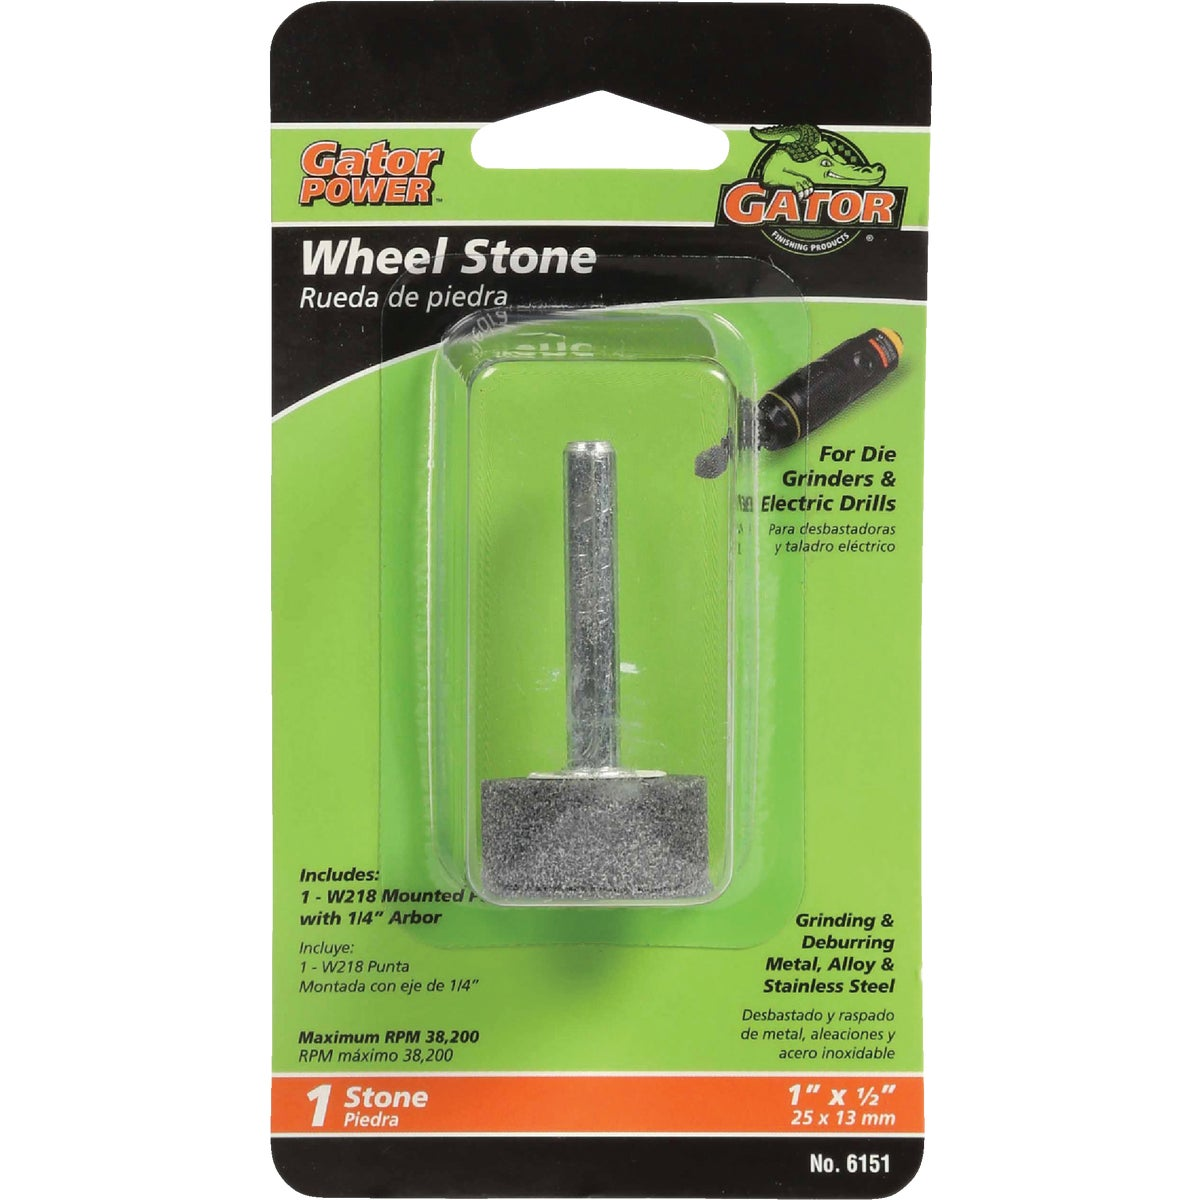 1X1/2 WHL GRINDING STONE - 6151 by Ali Industries Inc